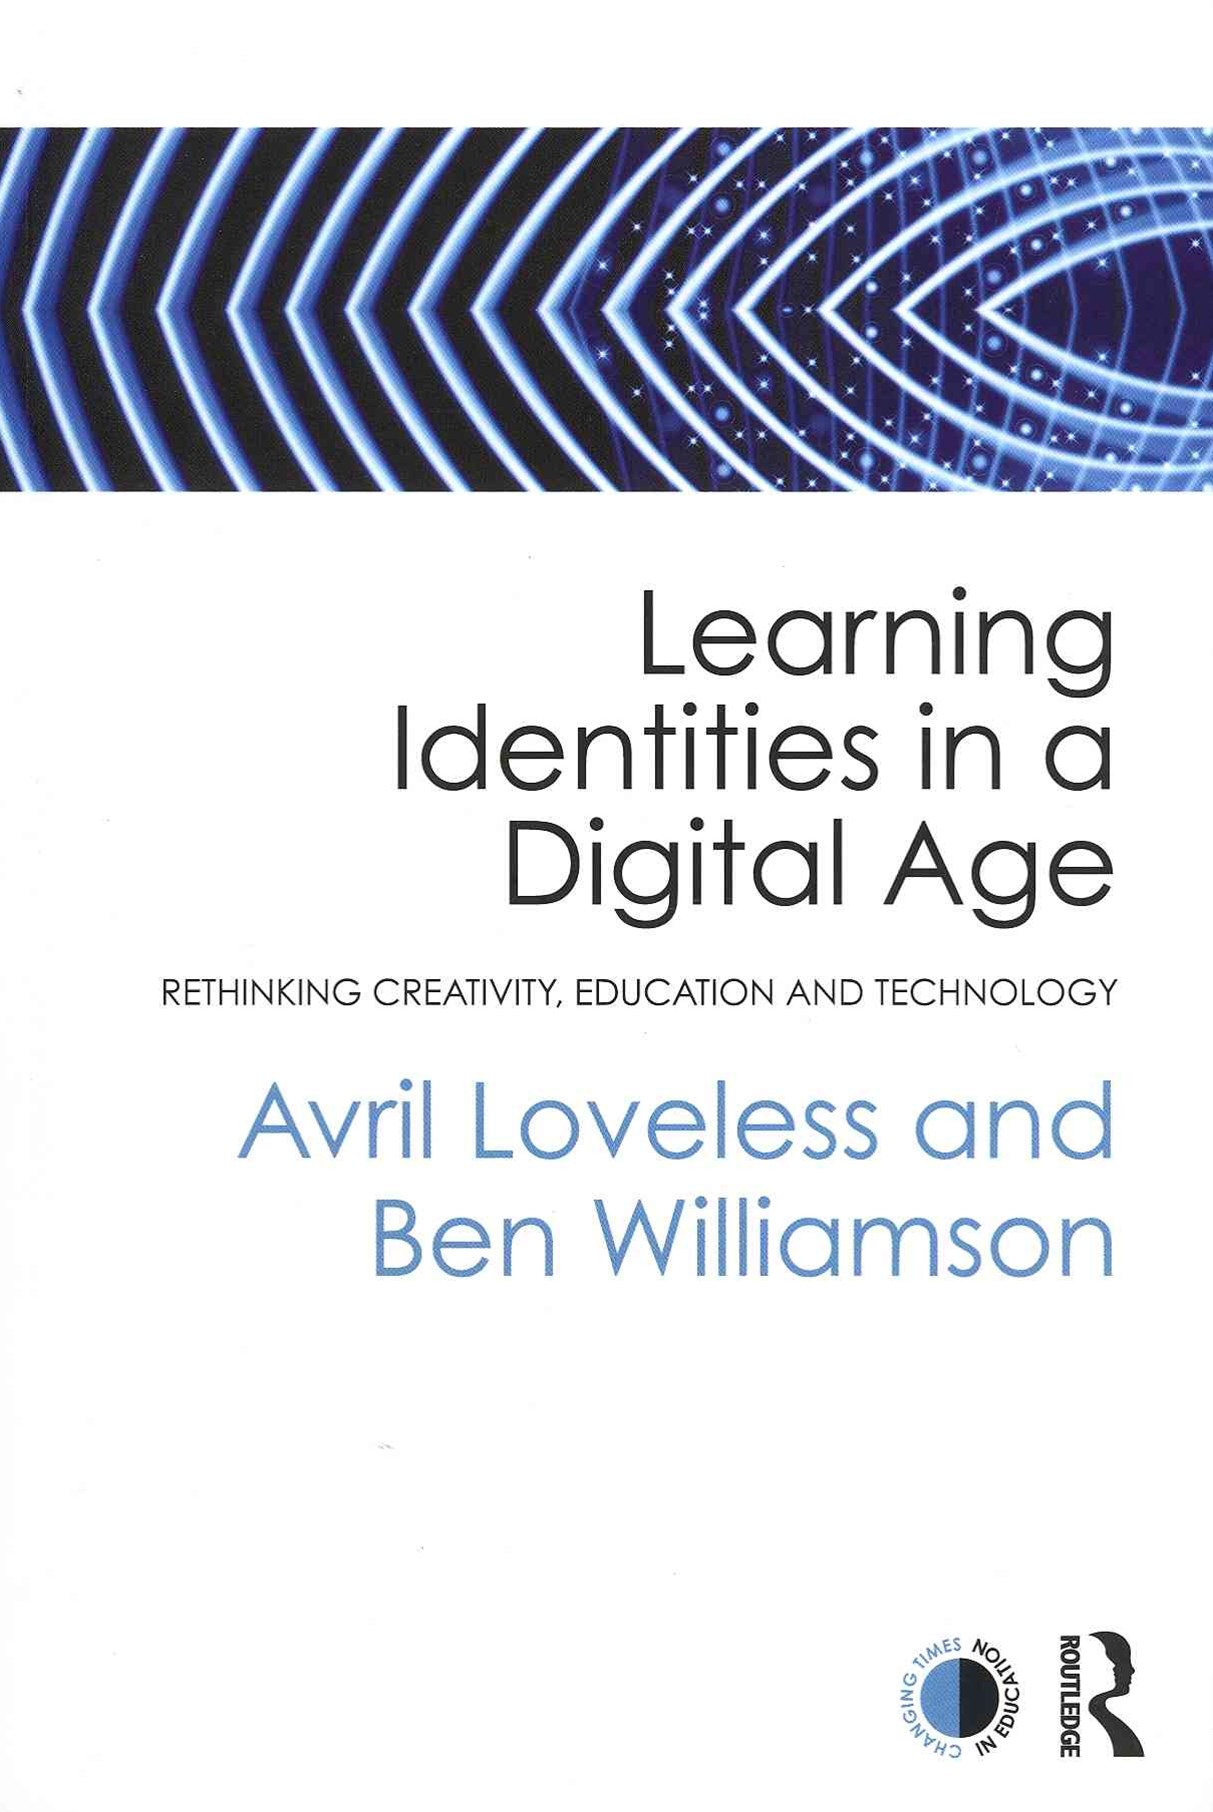 Learning Identities in a Digital Age